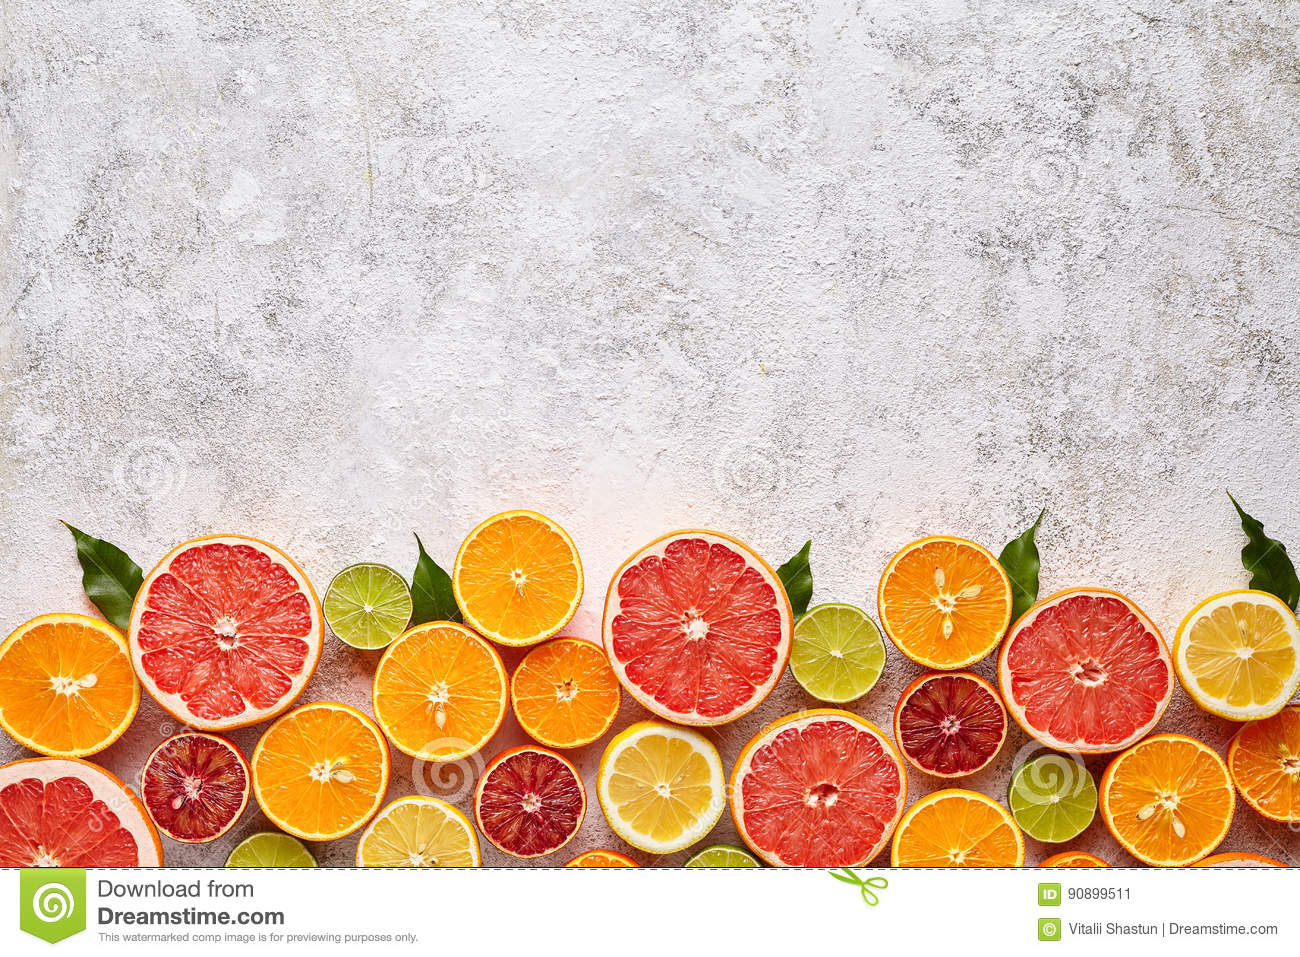 Citrus fruits vegan mix flat lay on white background, helthy vegetarian organic food